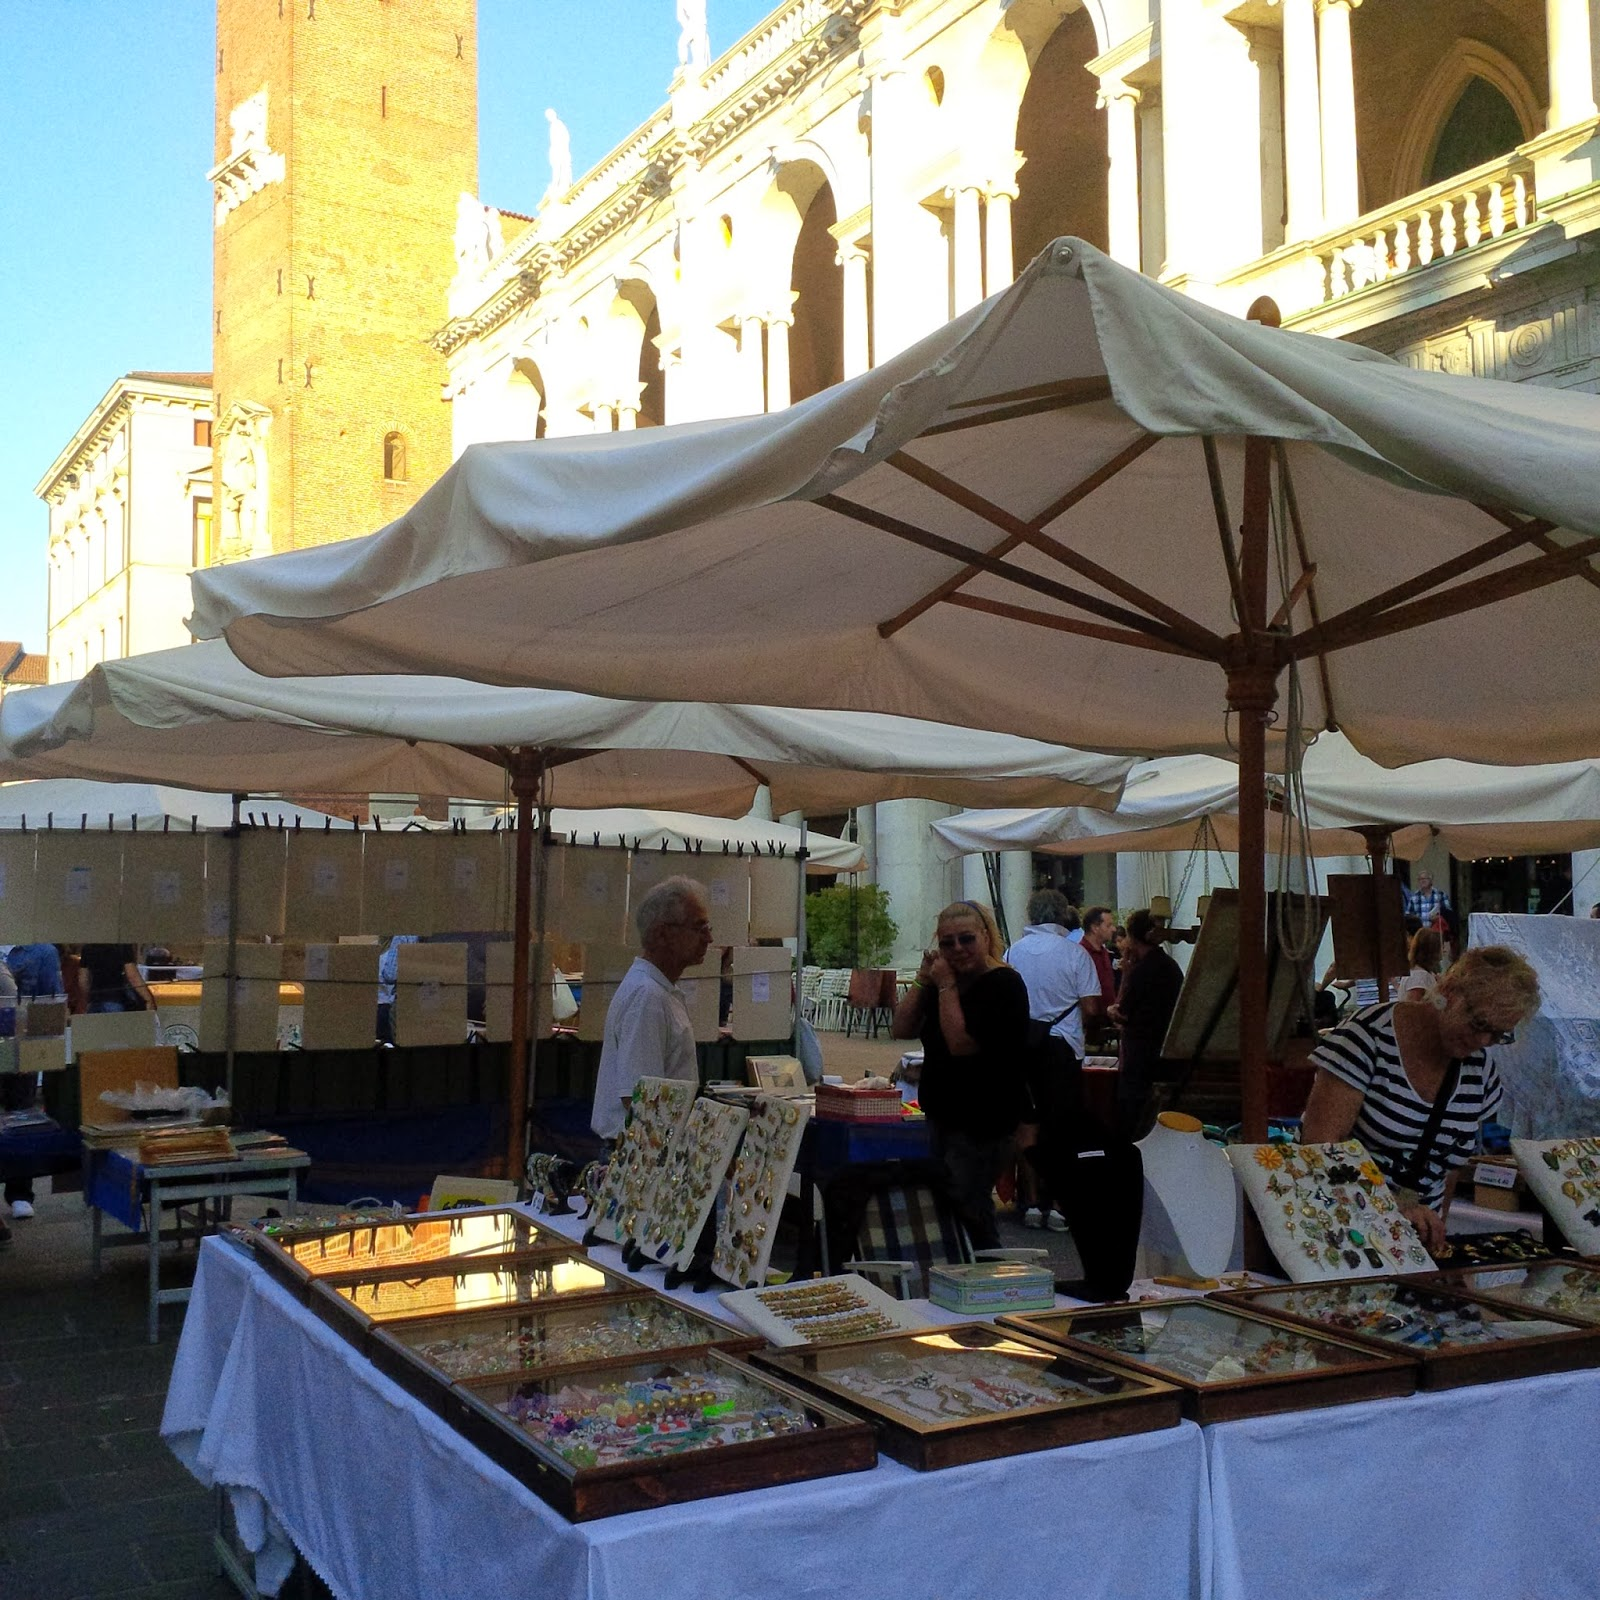 The antiques market in Vicenza